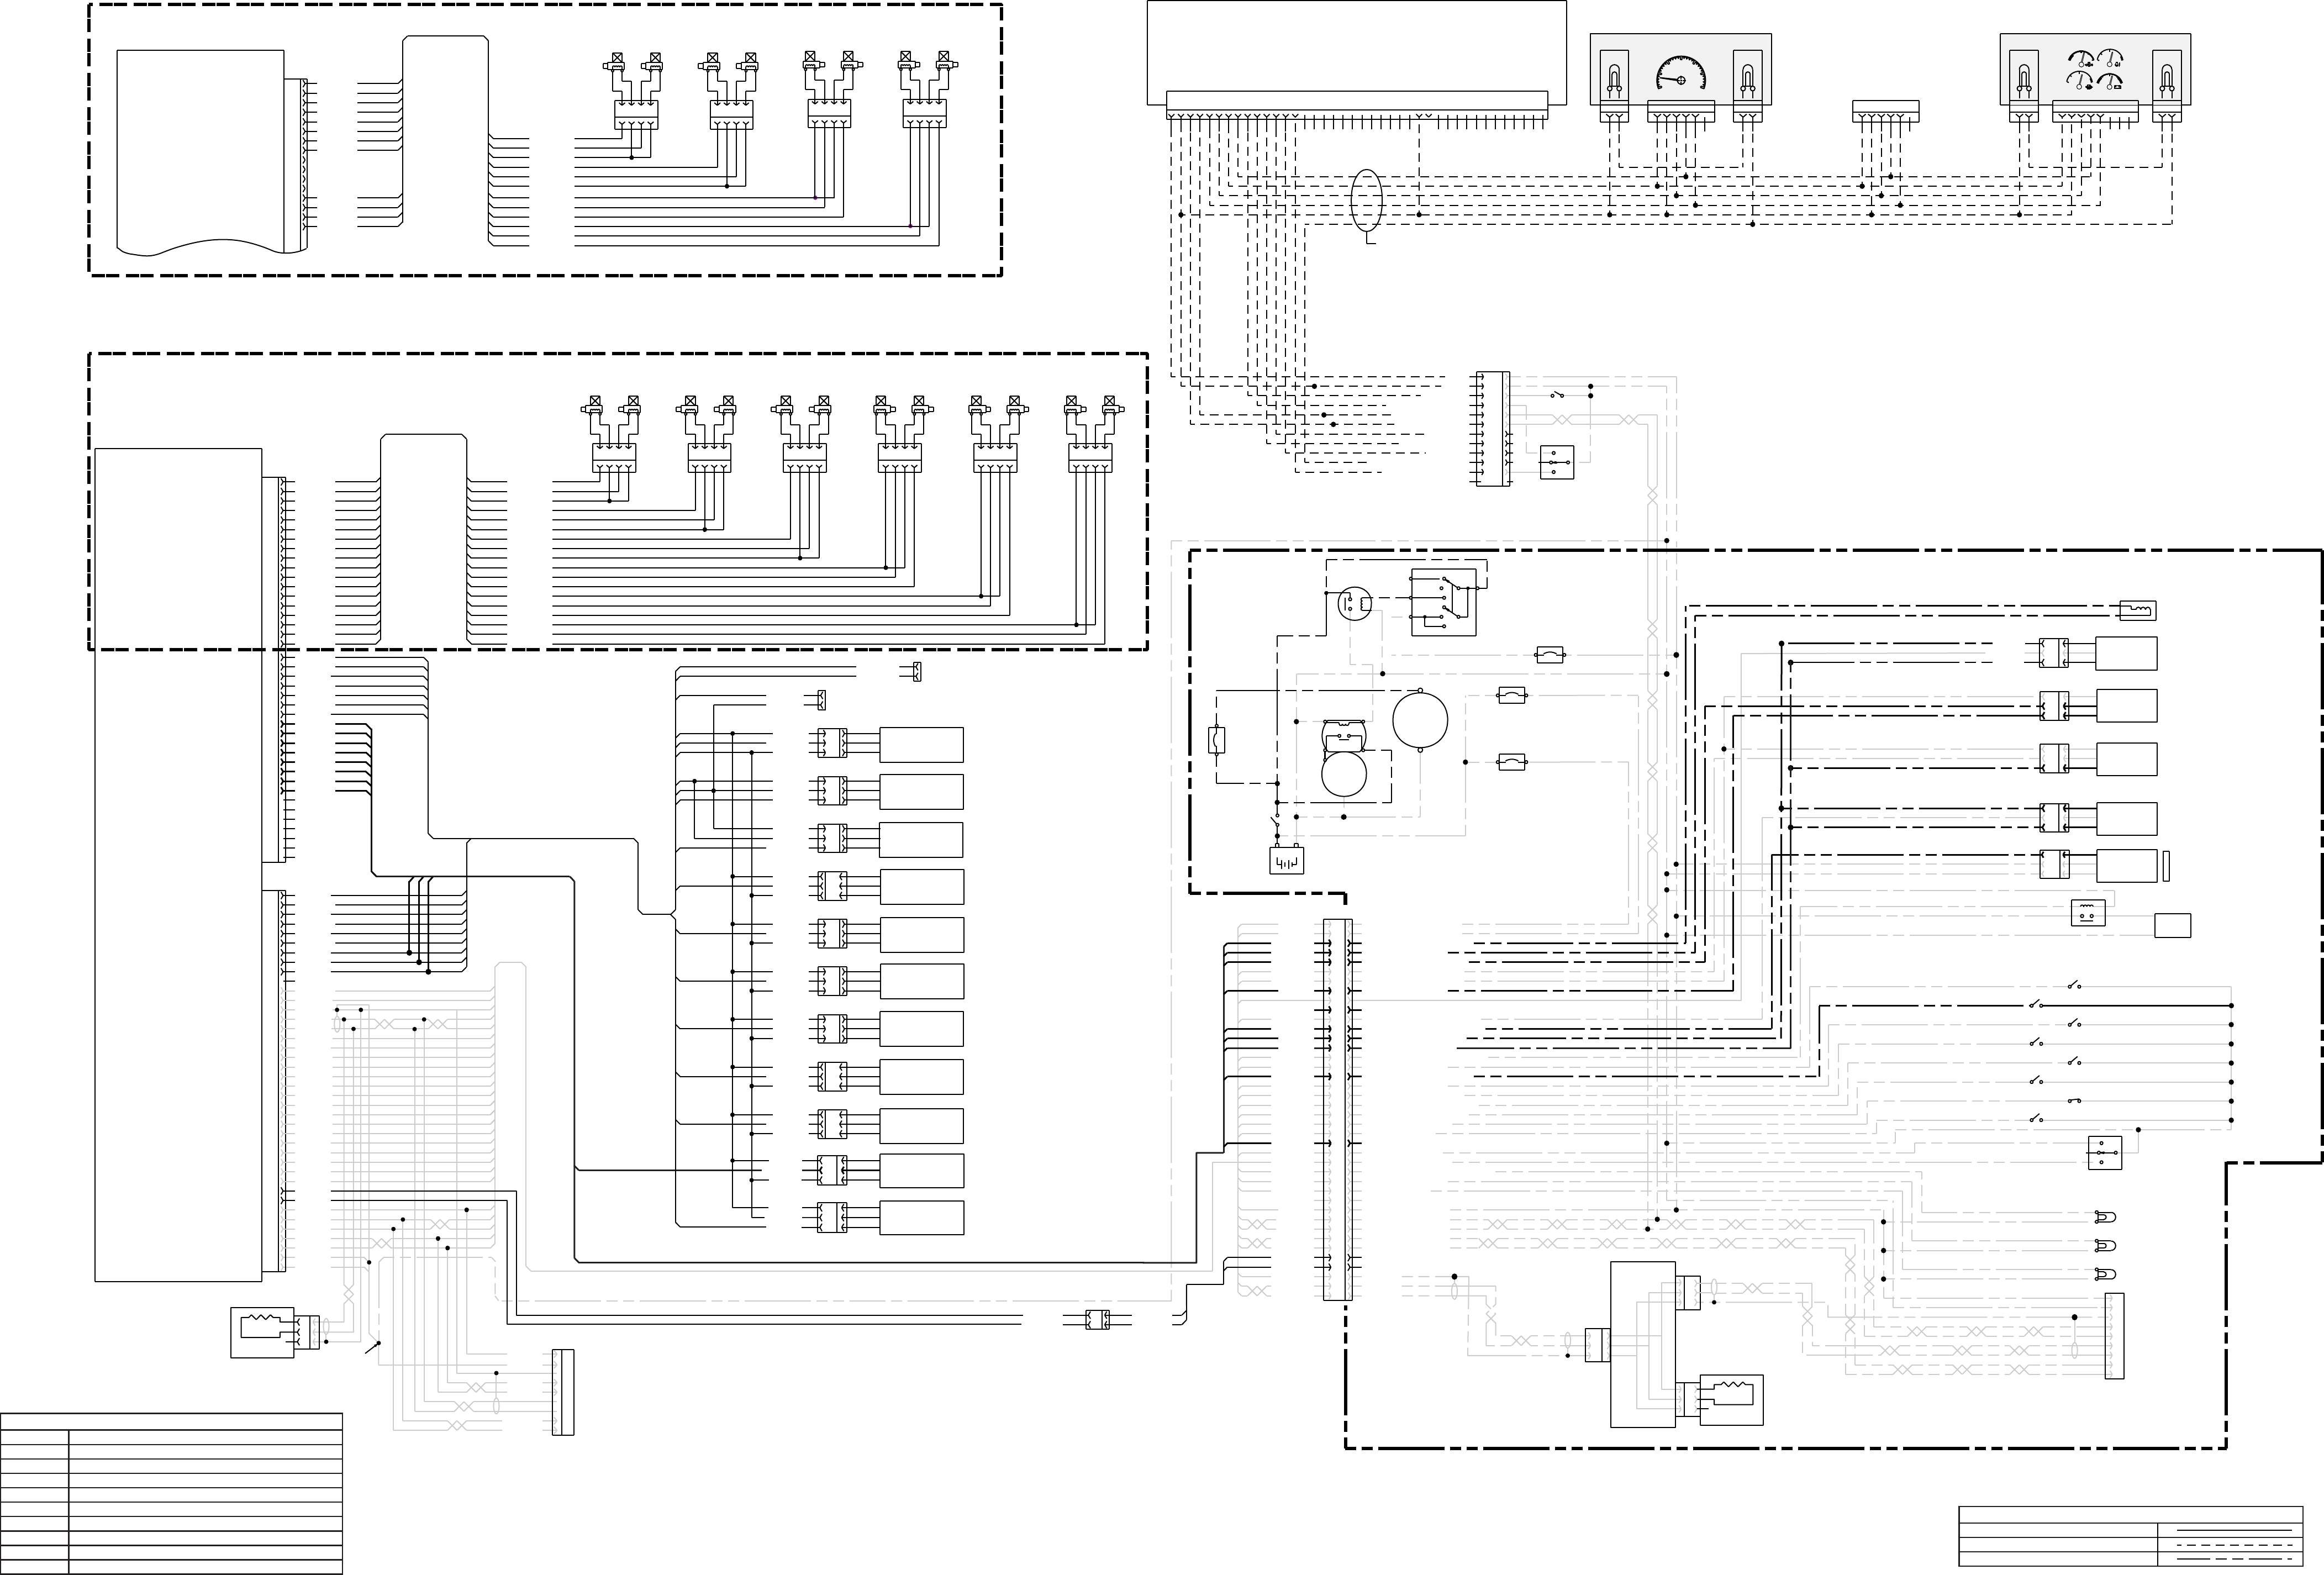 3408E & 3412E INDUSTRIAL ENGINES – ELECTRICAL SCHEMATIC